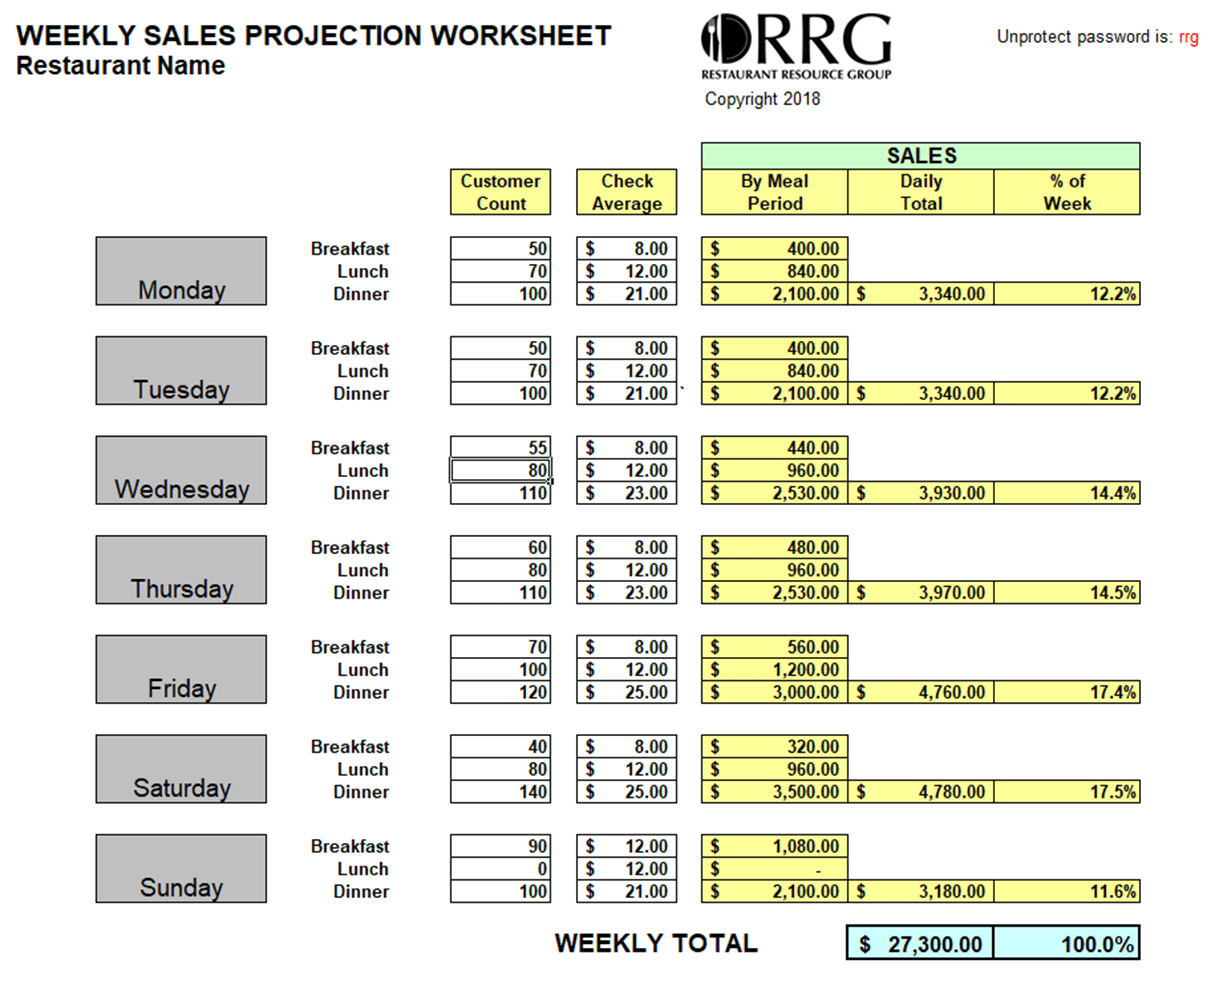 Restaurant Weekly Sales Projections Workbook Spreadsheet